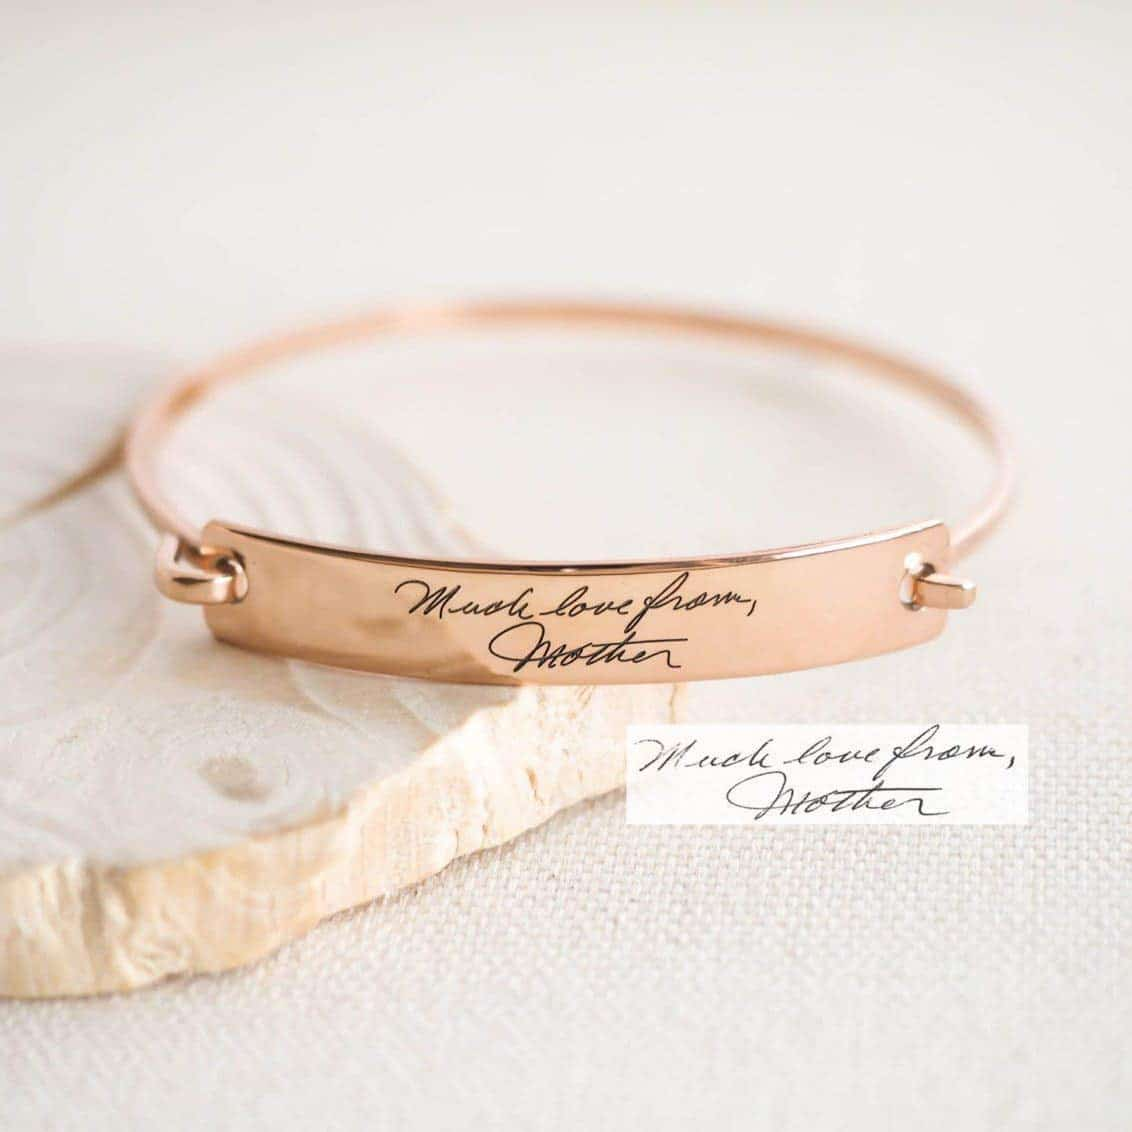 mothers-day-gifts-from-son-bracelet